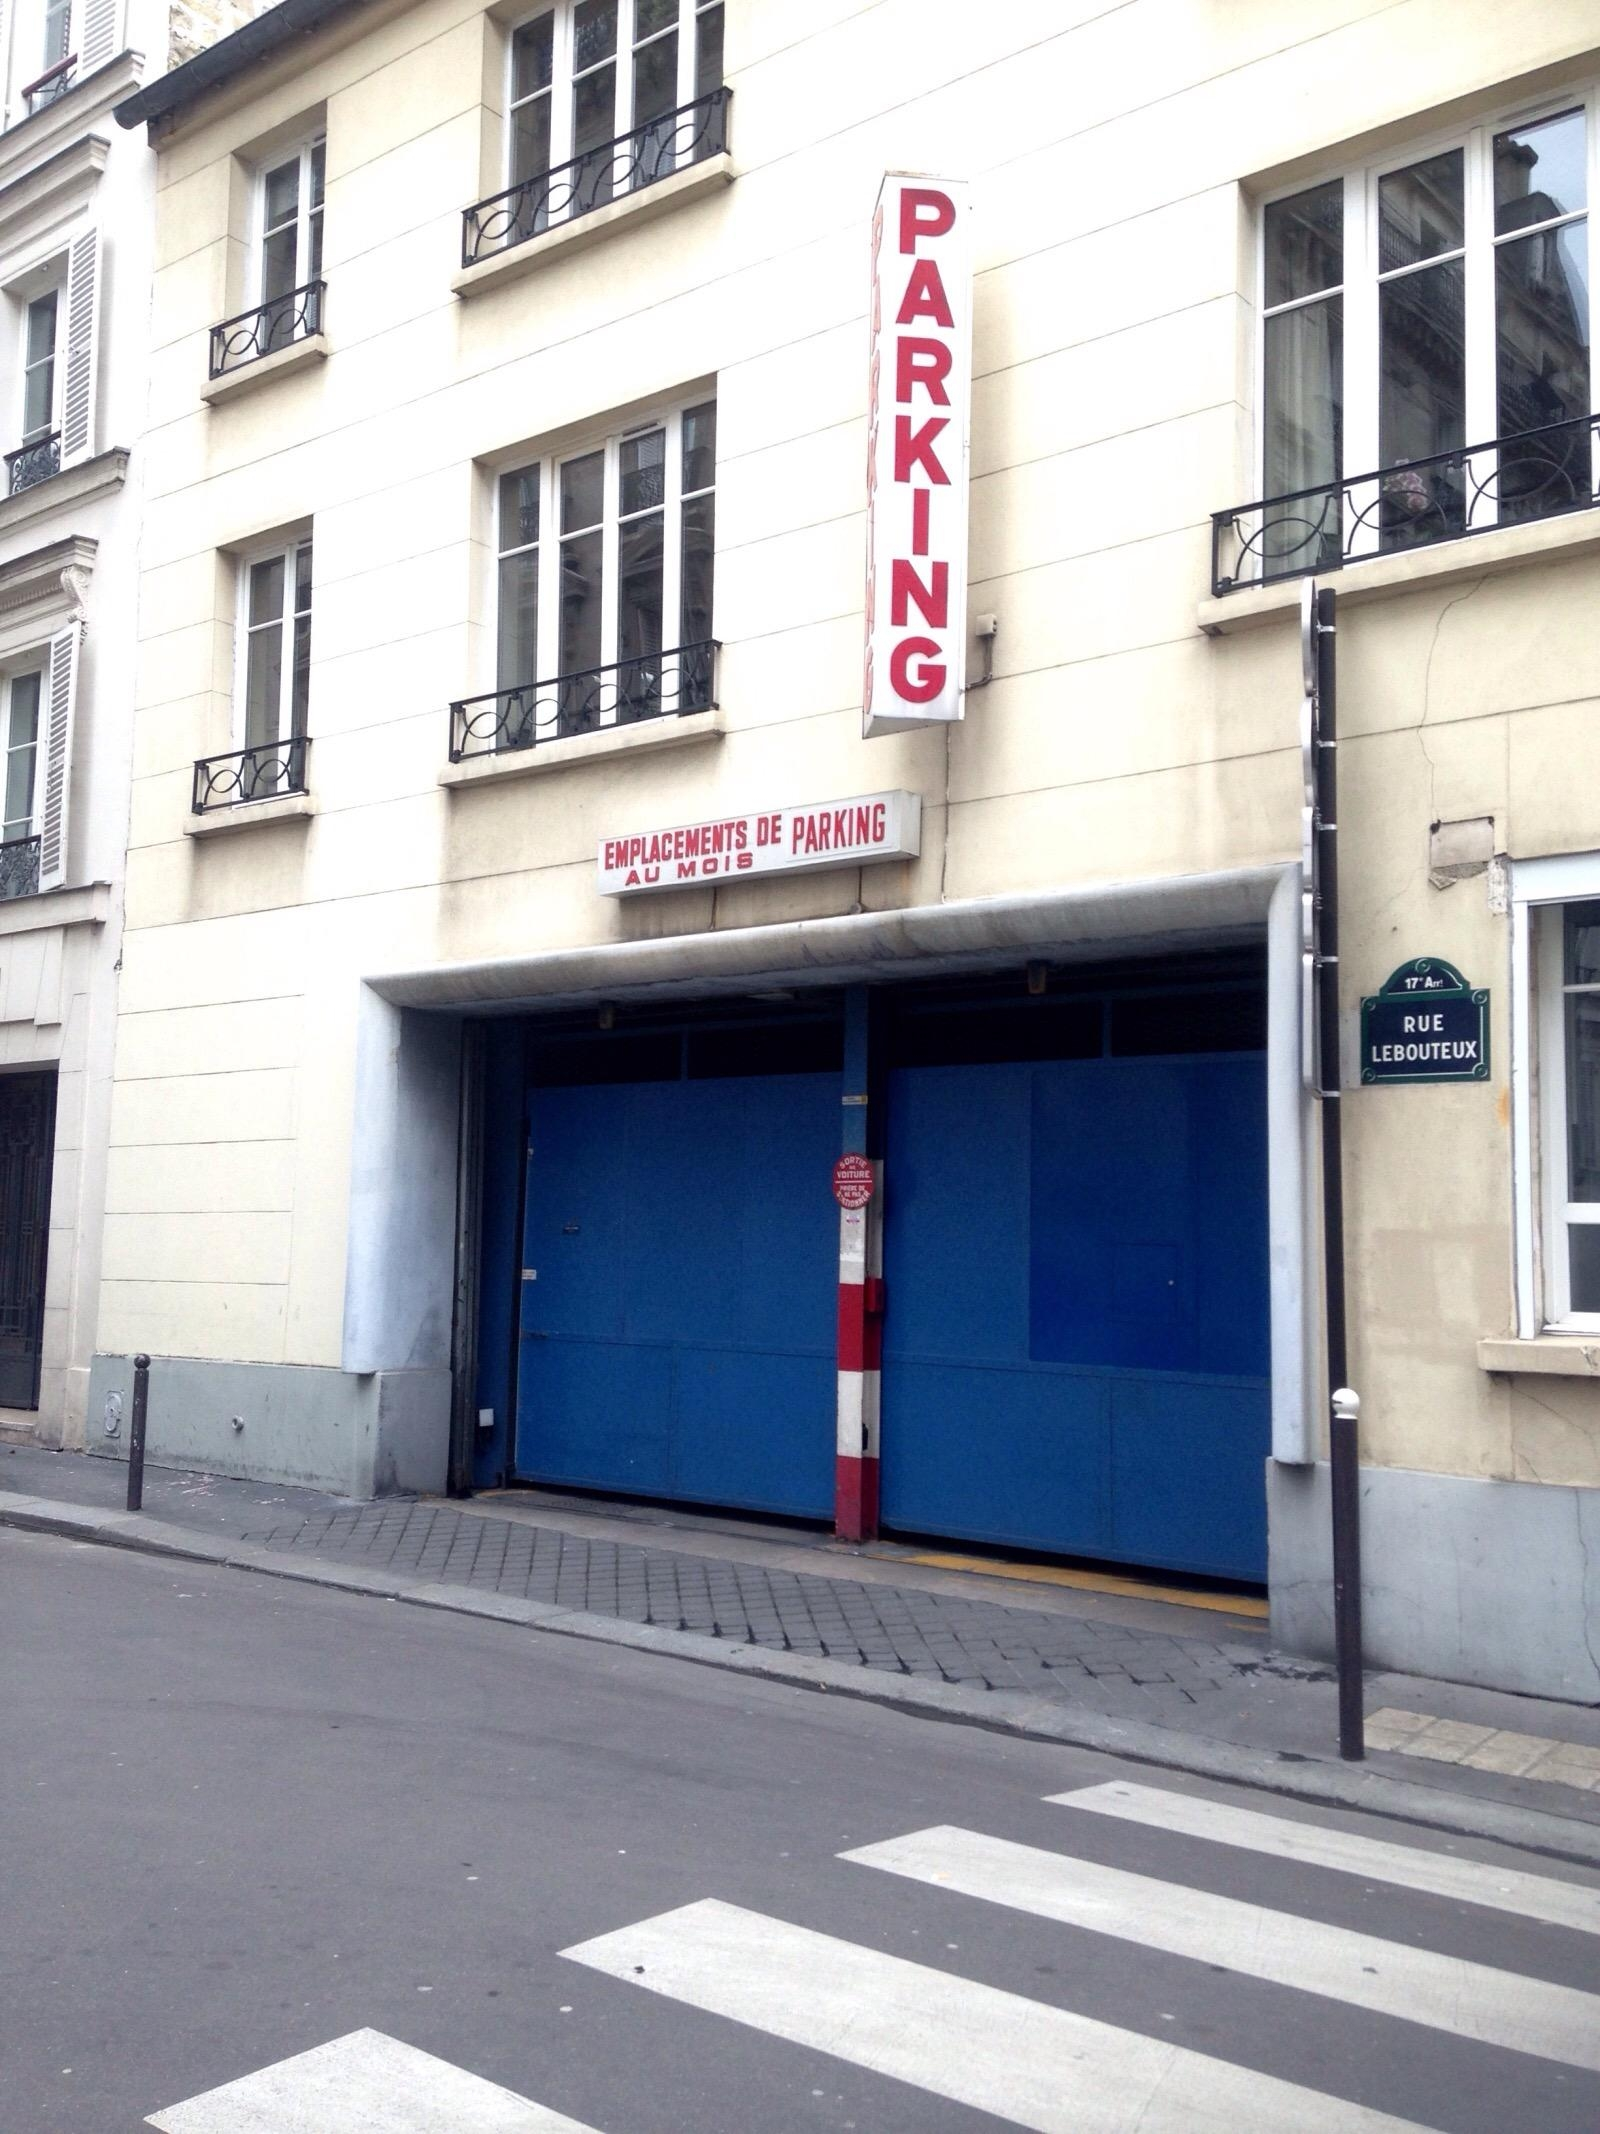 13 rue lebouteux garage parking in paris parkme for Garage automobile paris 13